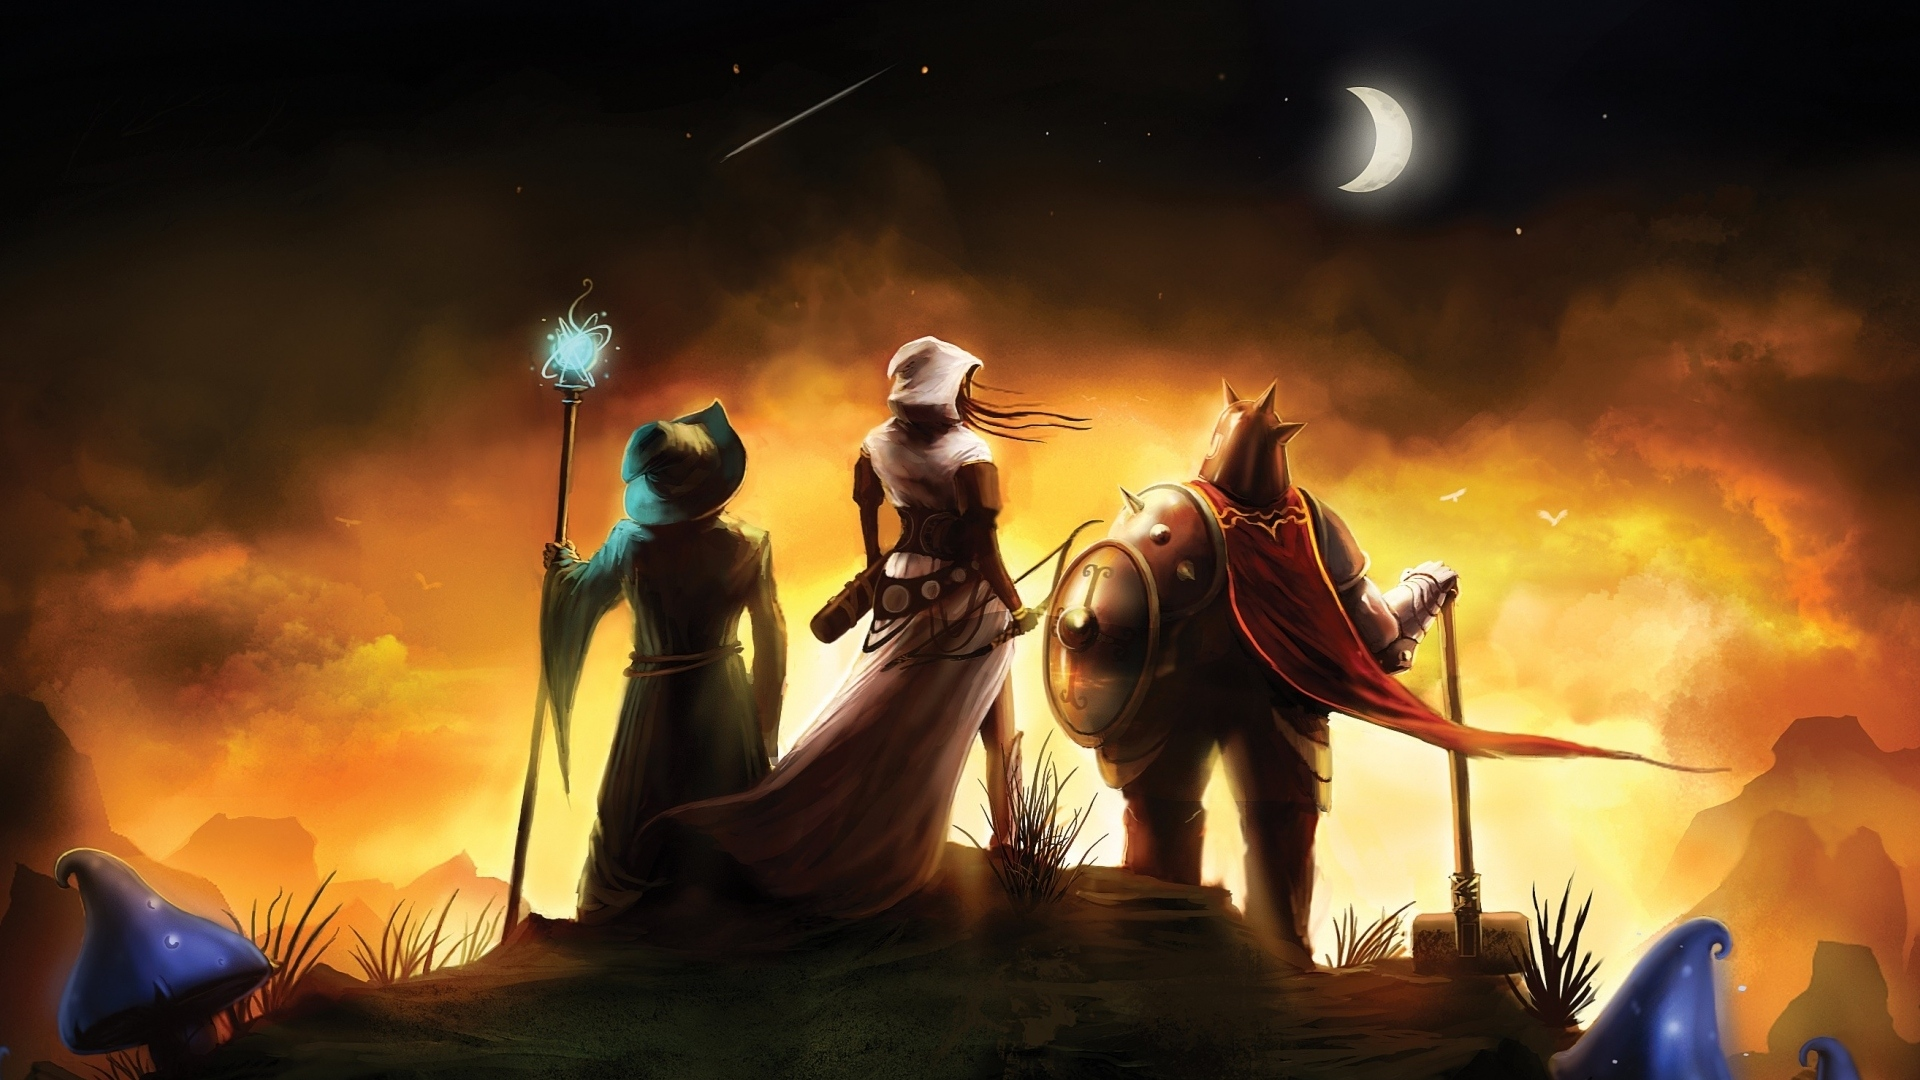 Amazing Trine 2 Pictures & Backgrounds